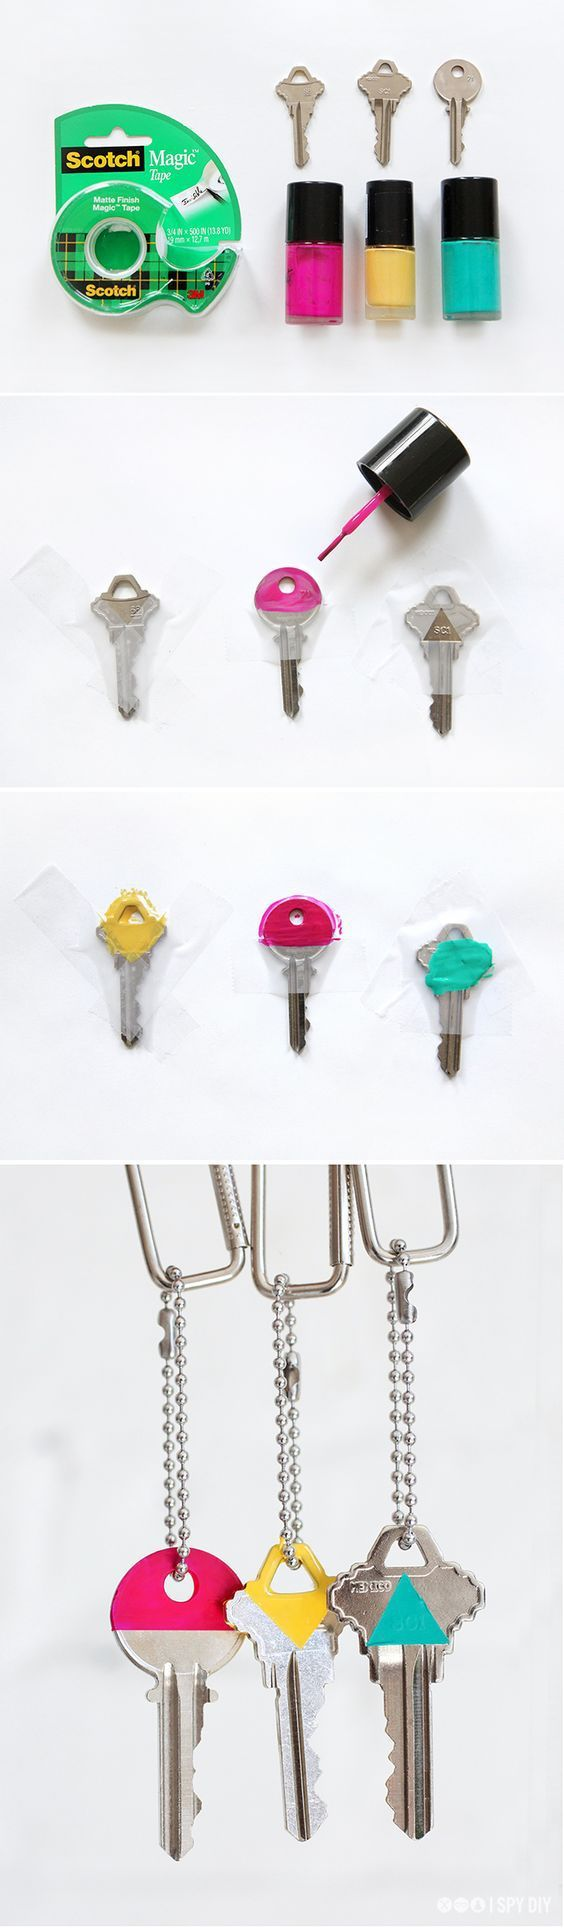 Differentiate your keys by painting the tops of your kets with different color nail polish so you know exactly which ones goes to what! Check out the 30 Life Hacks All College Students NEED to Know for more ideas!